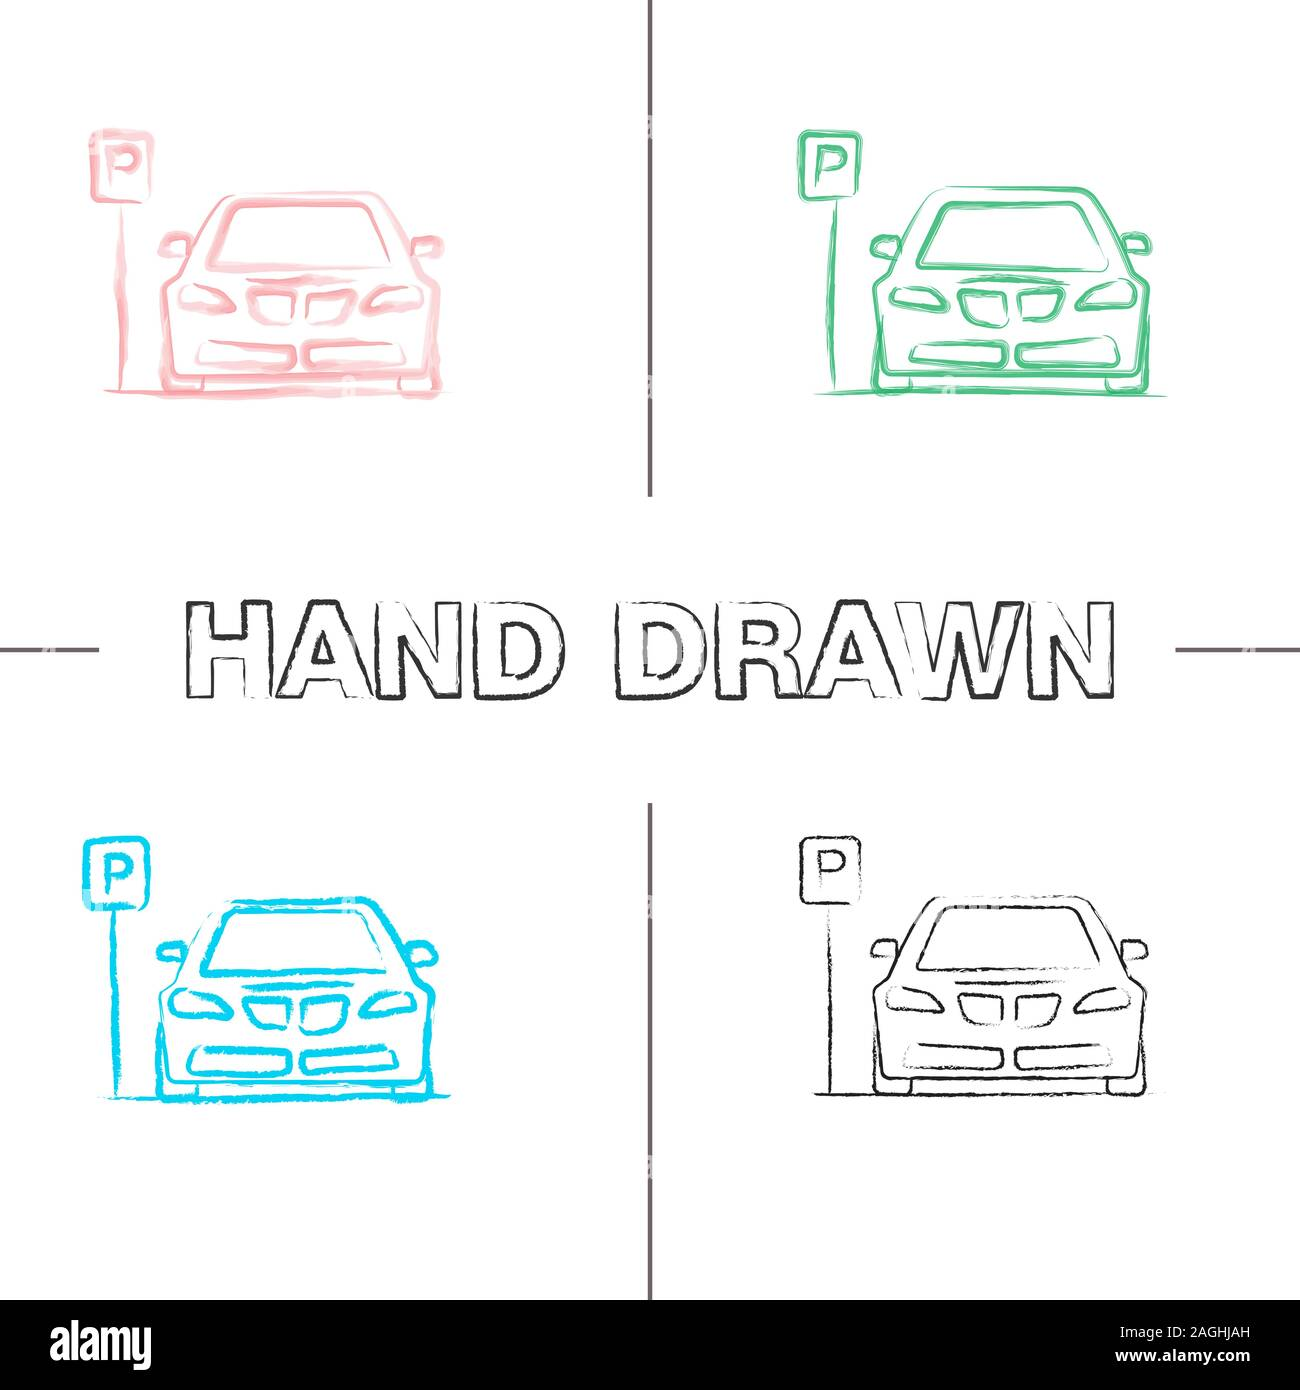 Parking zone hand drawn icons set. Car with P road sign. Color brush stroke. Isolated vector sketchy illustrations Stock Vector